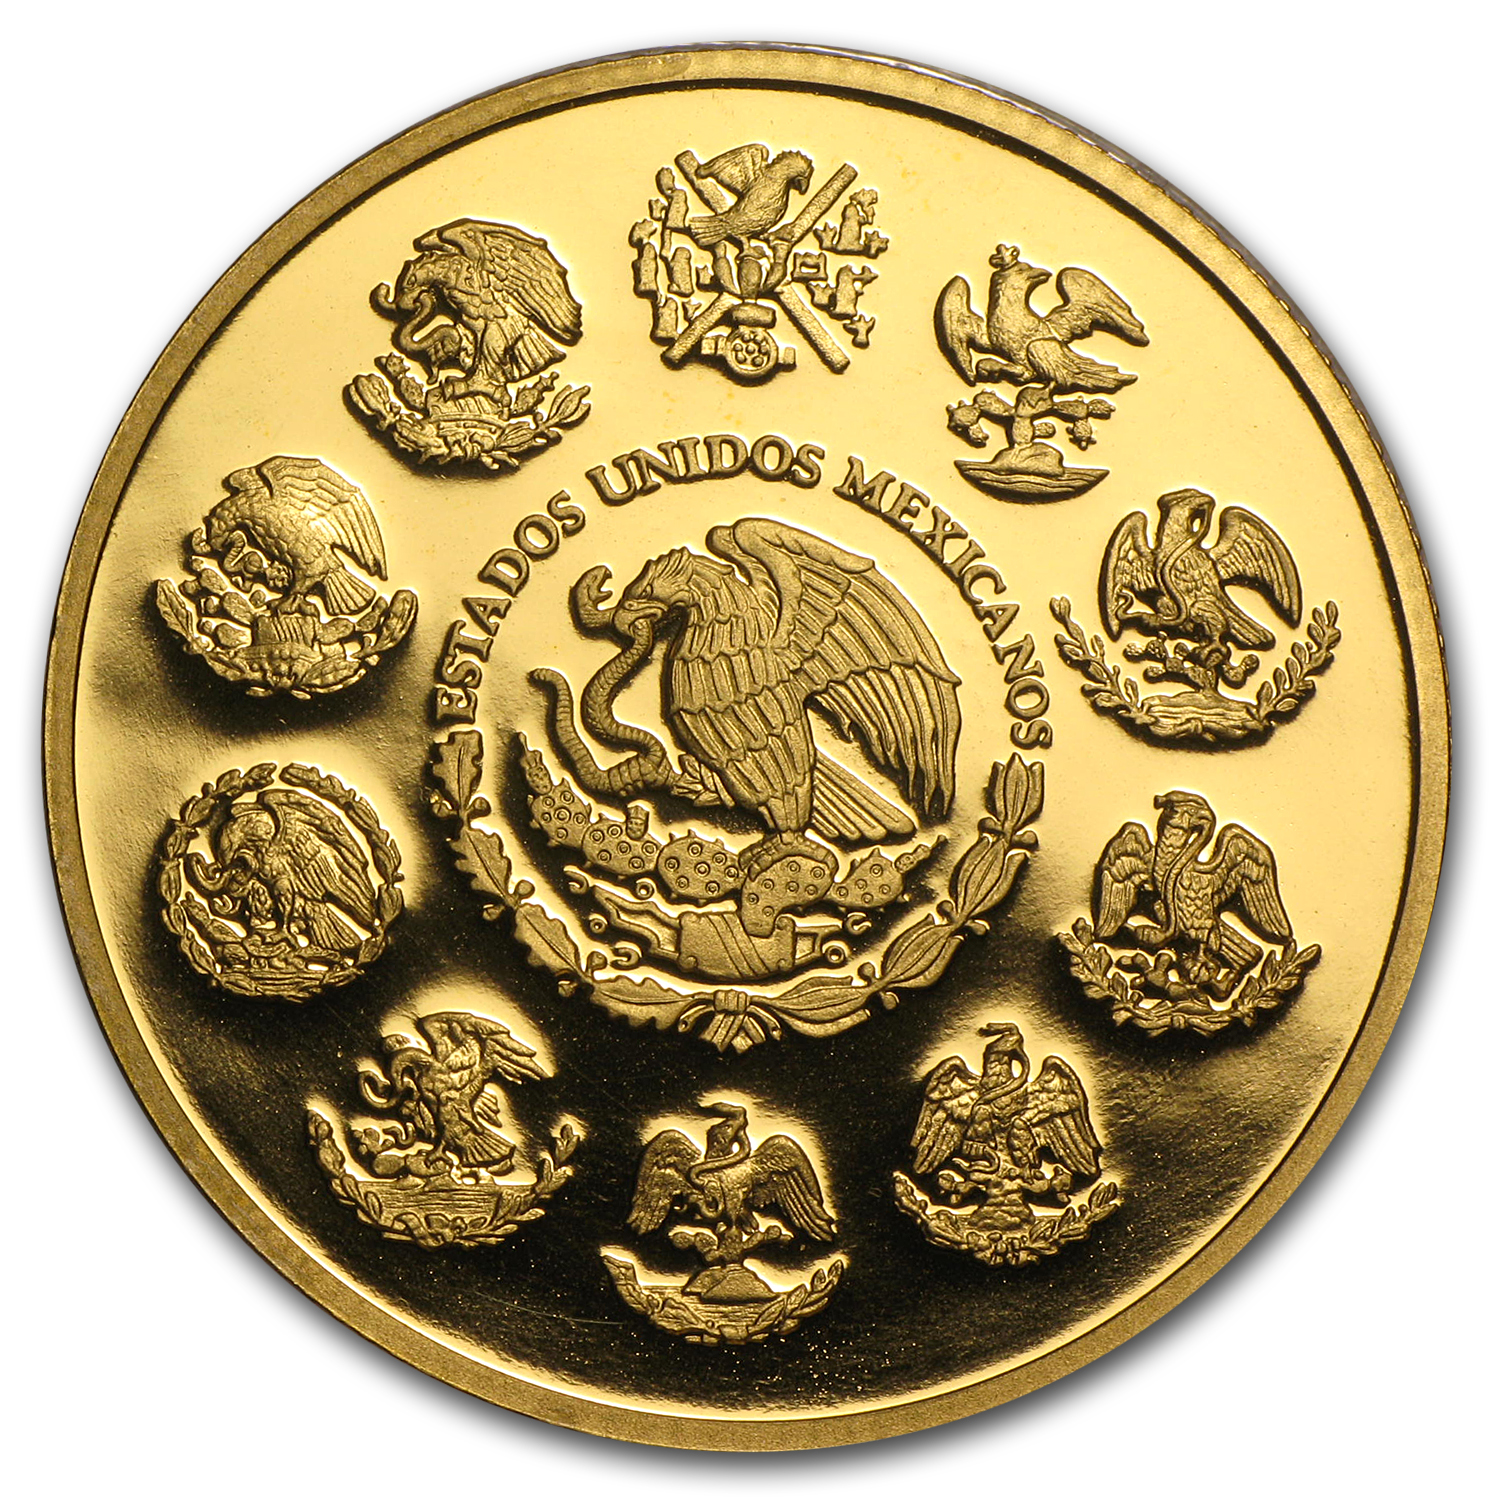 2008 1 oz Gold Mexican Libertad - Proof